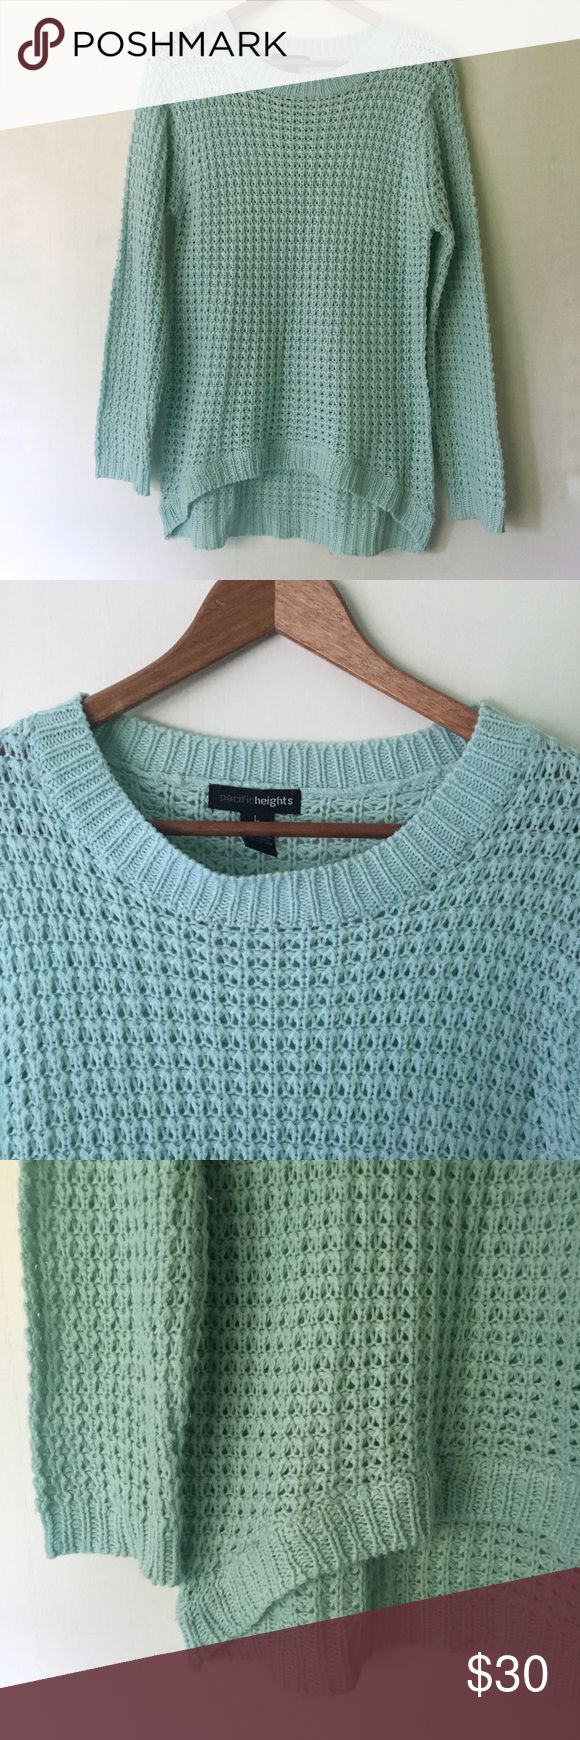 """Pacific Heights // Open Knit Mint Sweater Add a layer to your outfit with this sweater from Pacific Heights. Mint colored. Open weave knit. High low hemline. Long sleeves. Extra comfy. In excellent condition.   Measurements (approx): Bust 36"""" Waist 34"""" Hips 38"""" Length 25"""" front, 29"""" back Pacific Heights Sweaters Crew & Scoop Necks"""